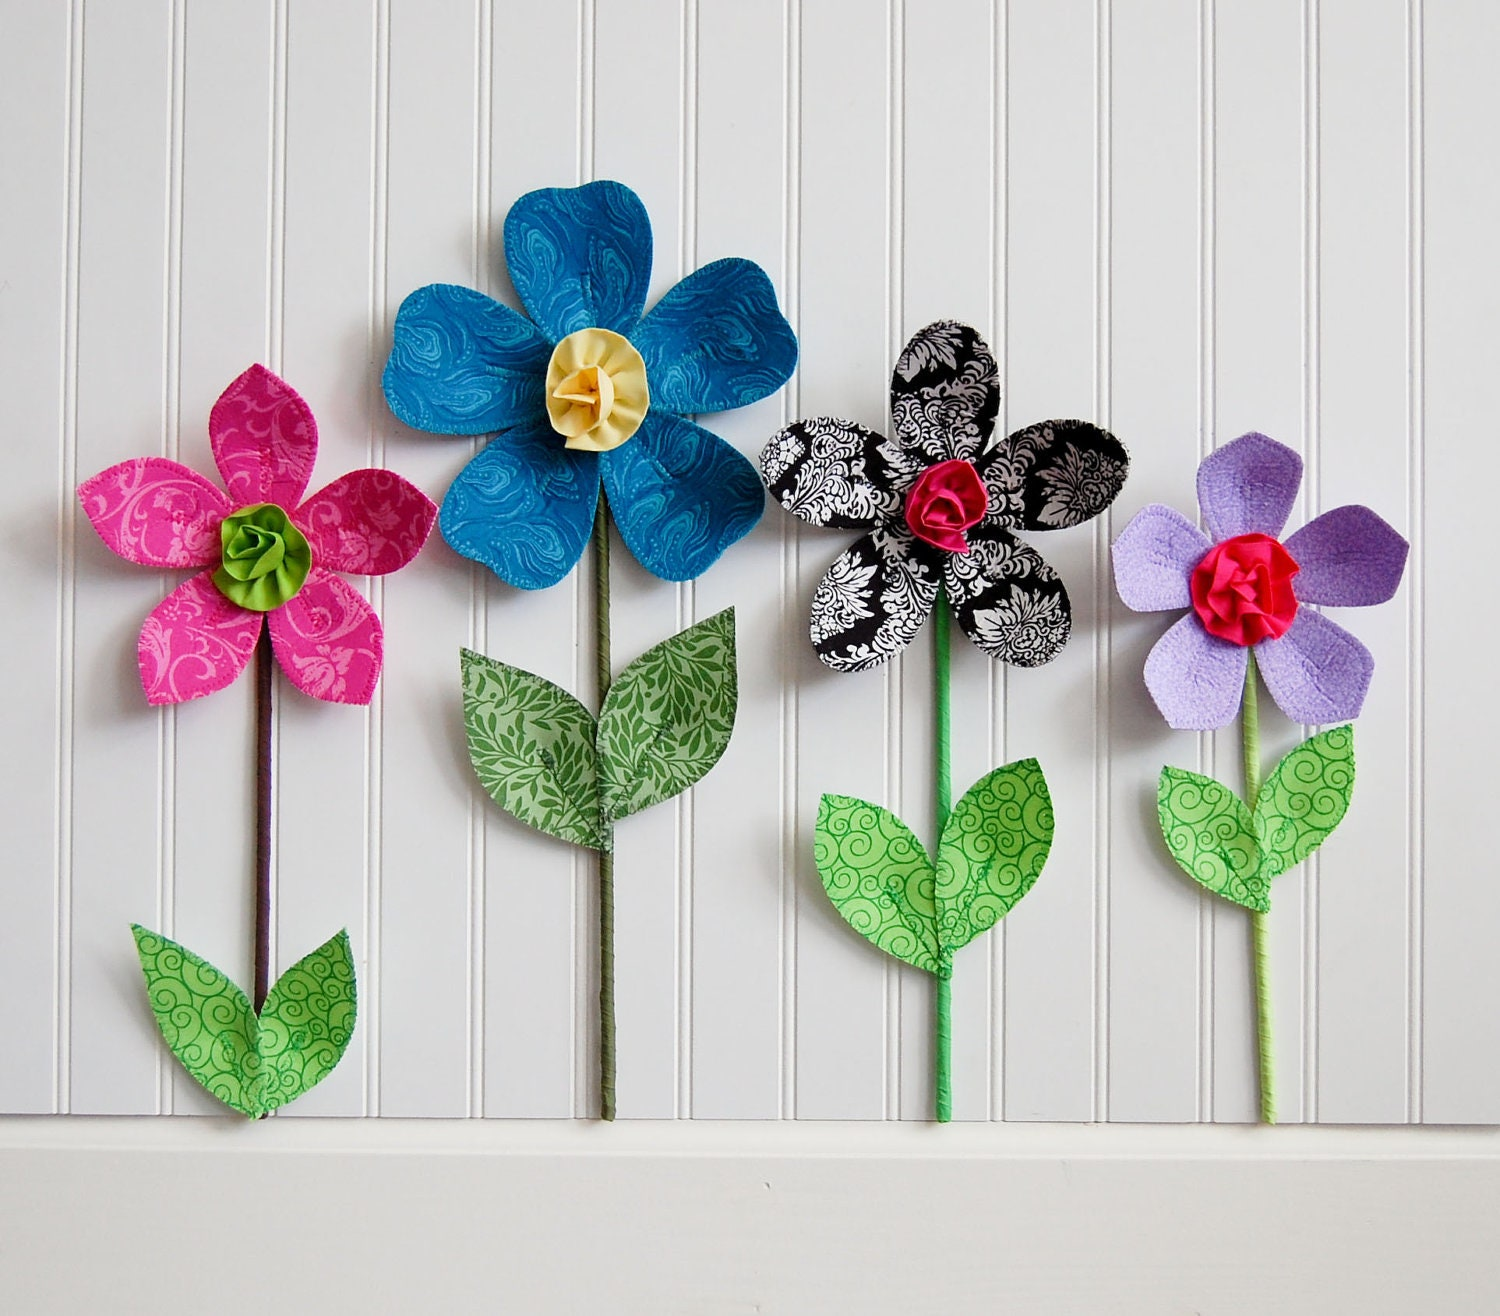 Sale fabric wall flower 3d wall art teal for 3d flowers for wall decoration